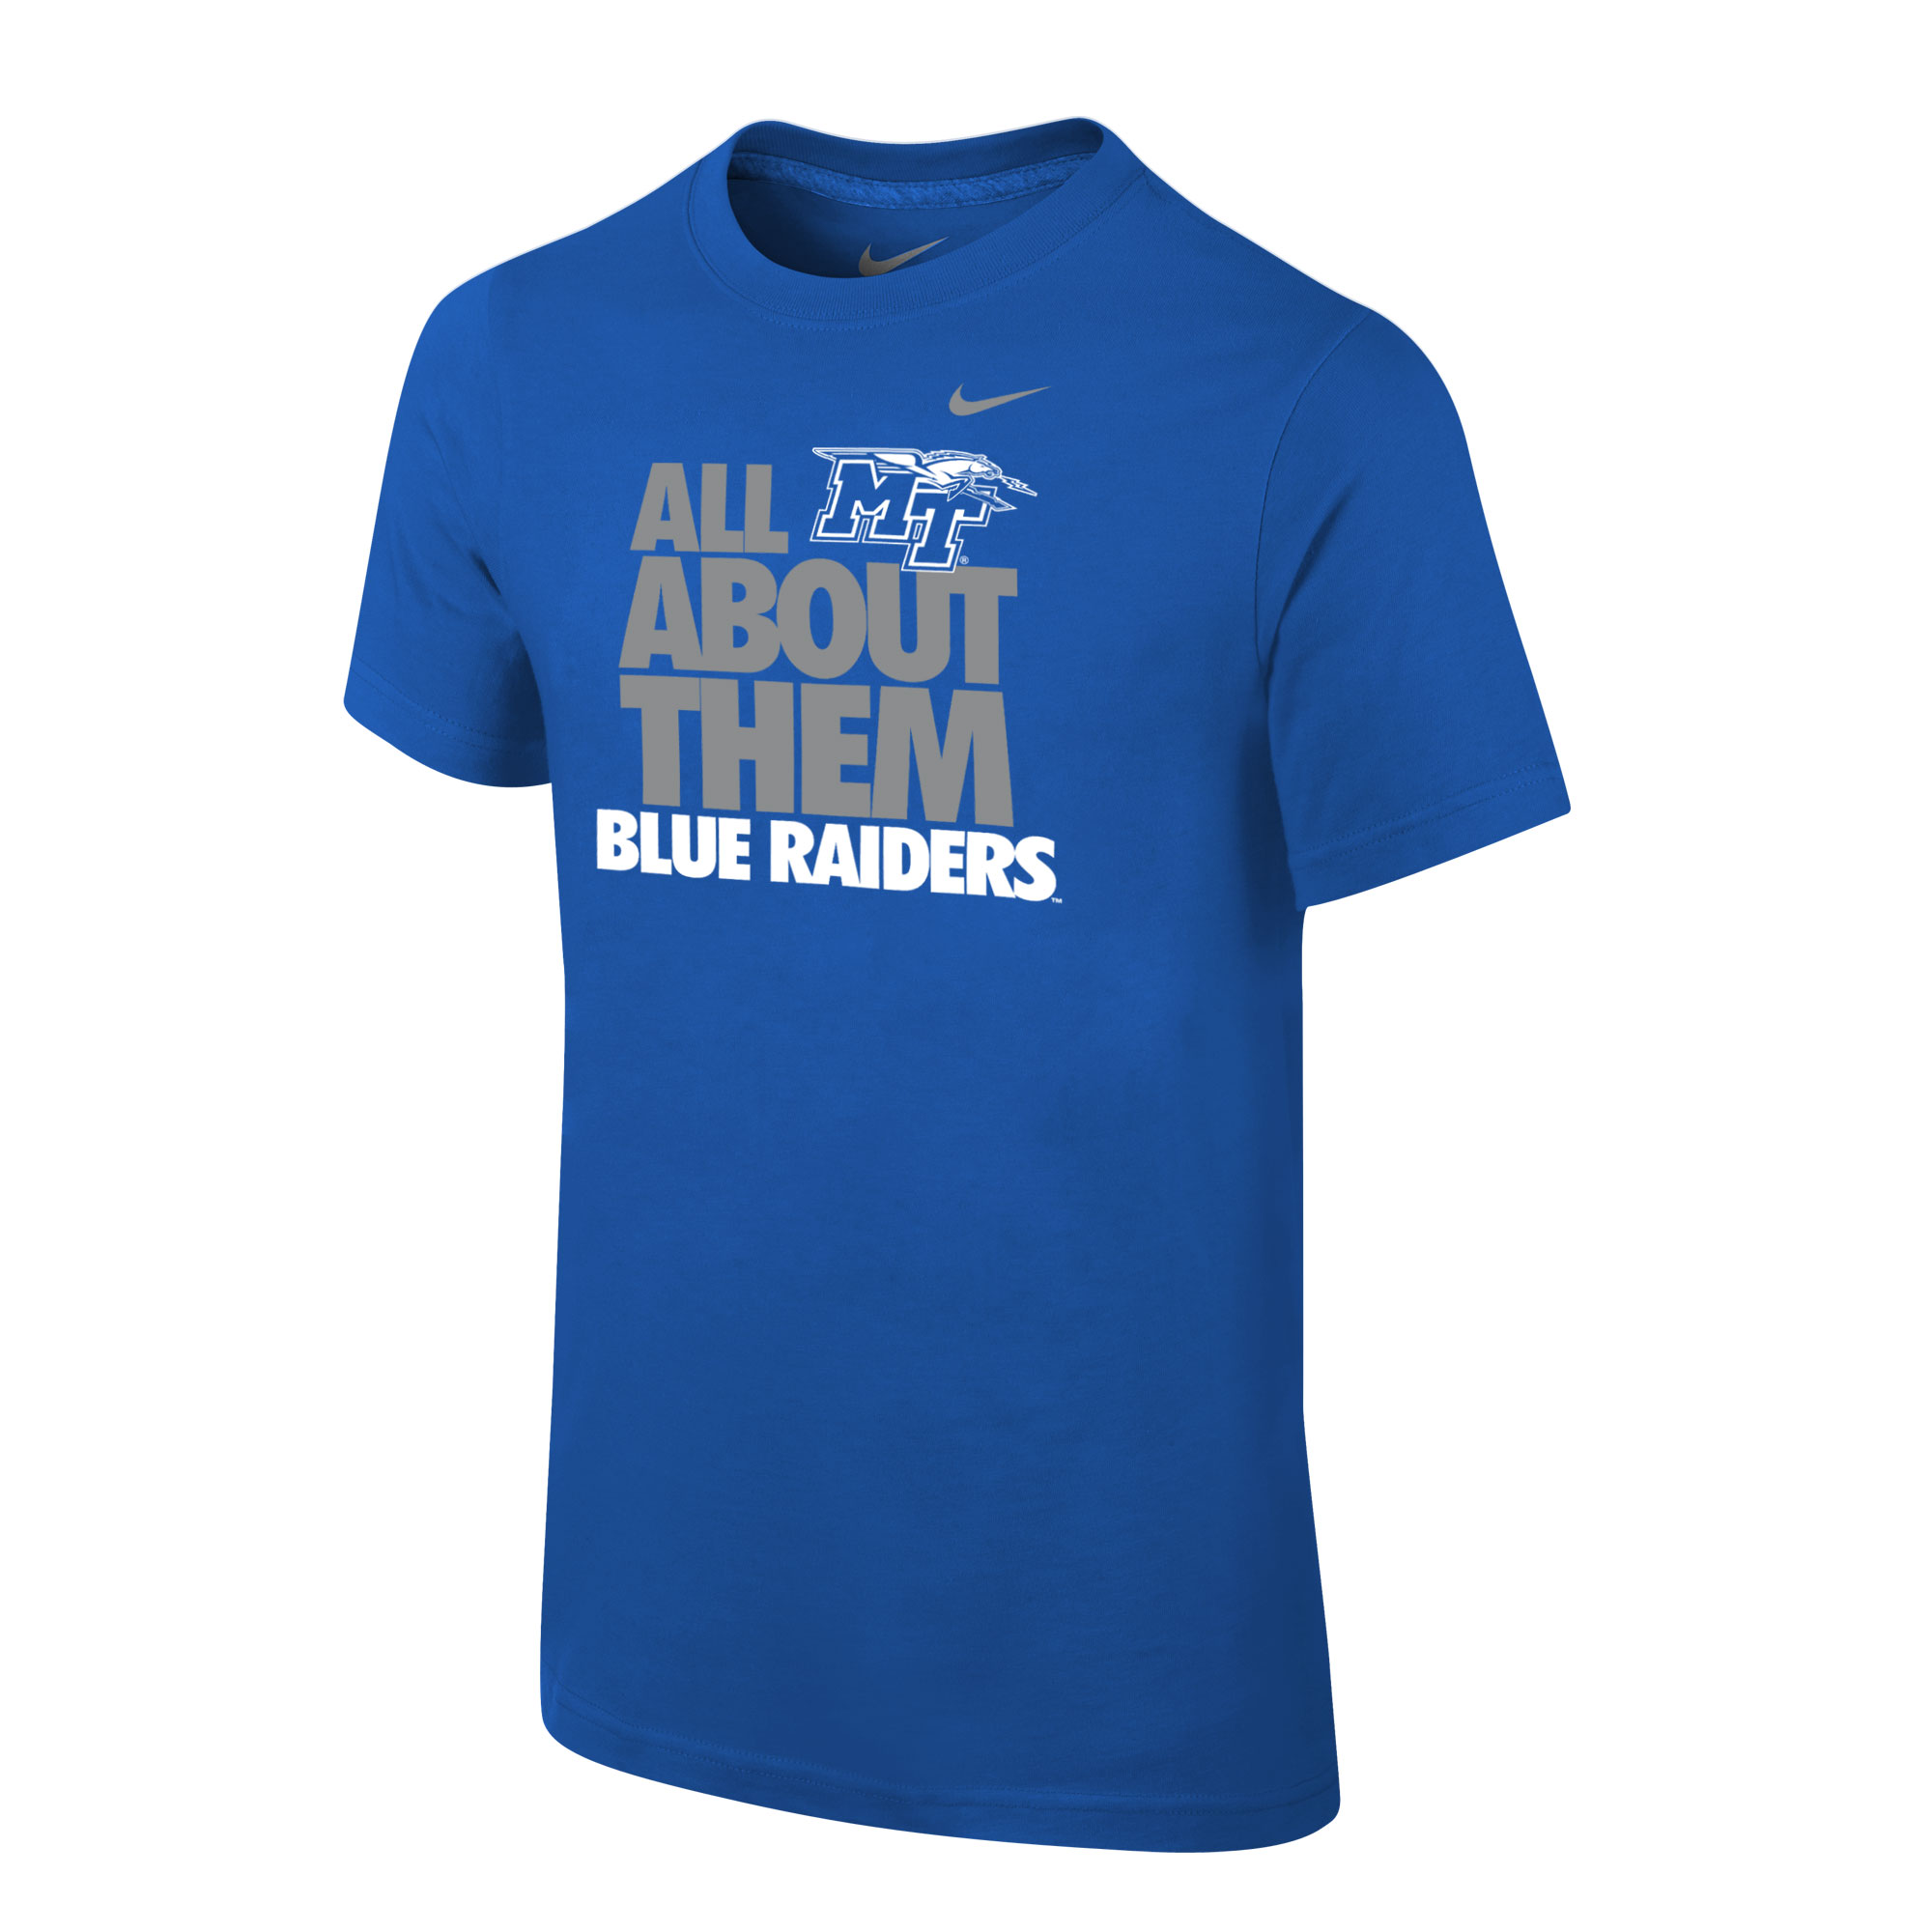 Youth All About Them Blue Raiders Nike® Tshirt